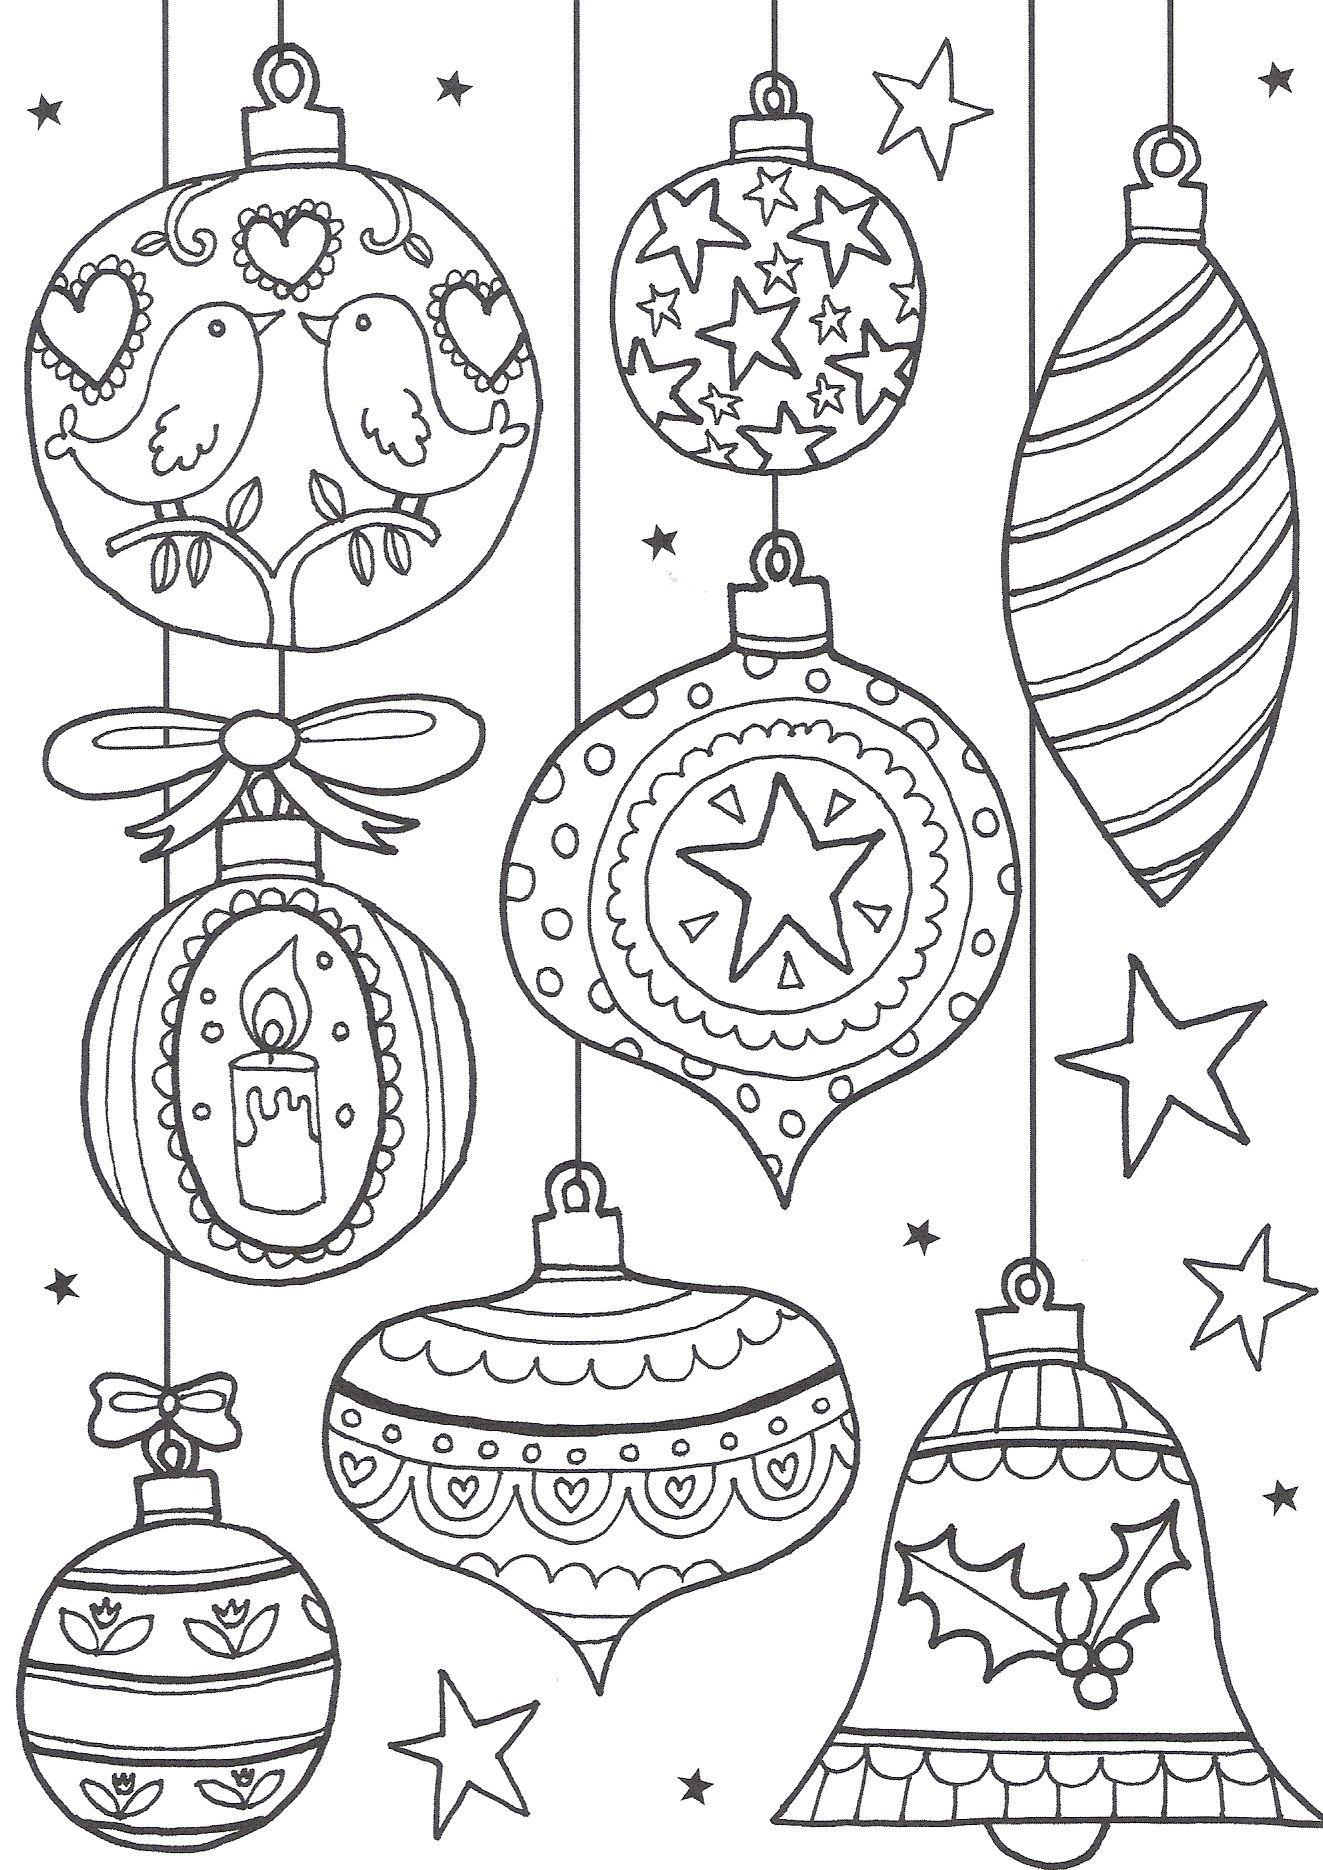 Free Christmas Coloring In With Colouring Pages For Adults The Ultimate Roundup